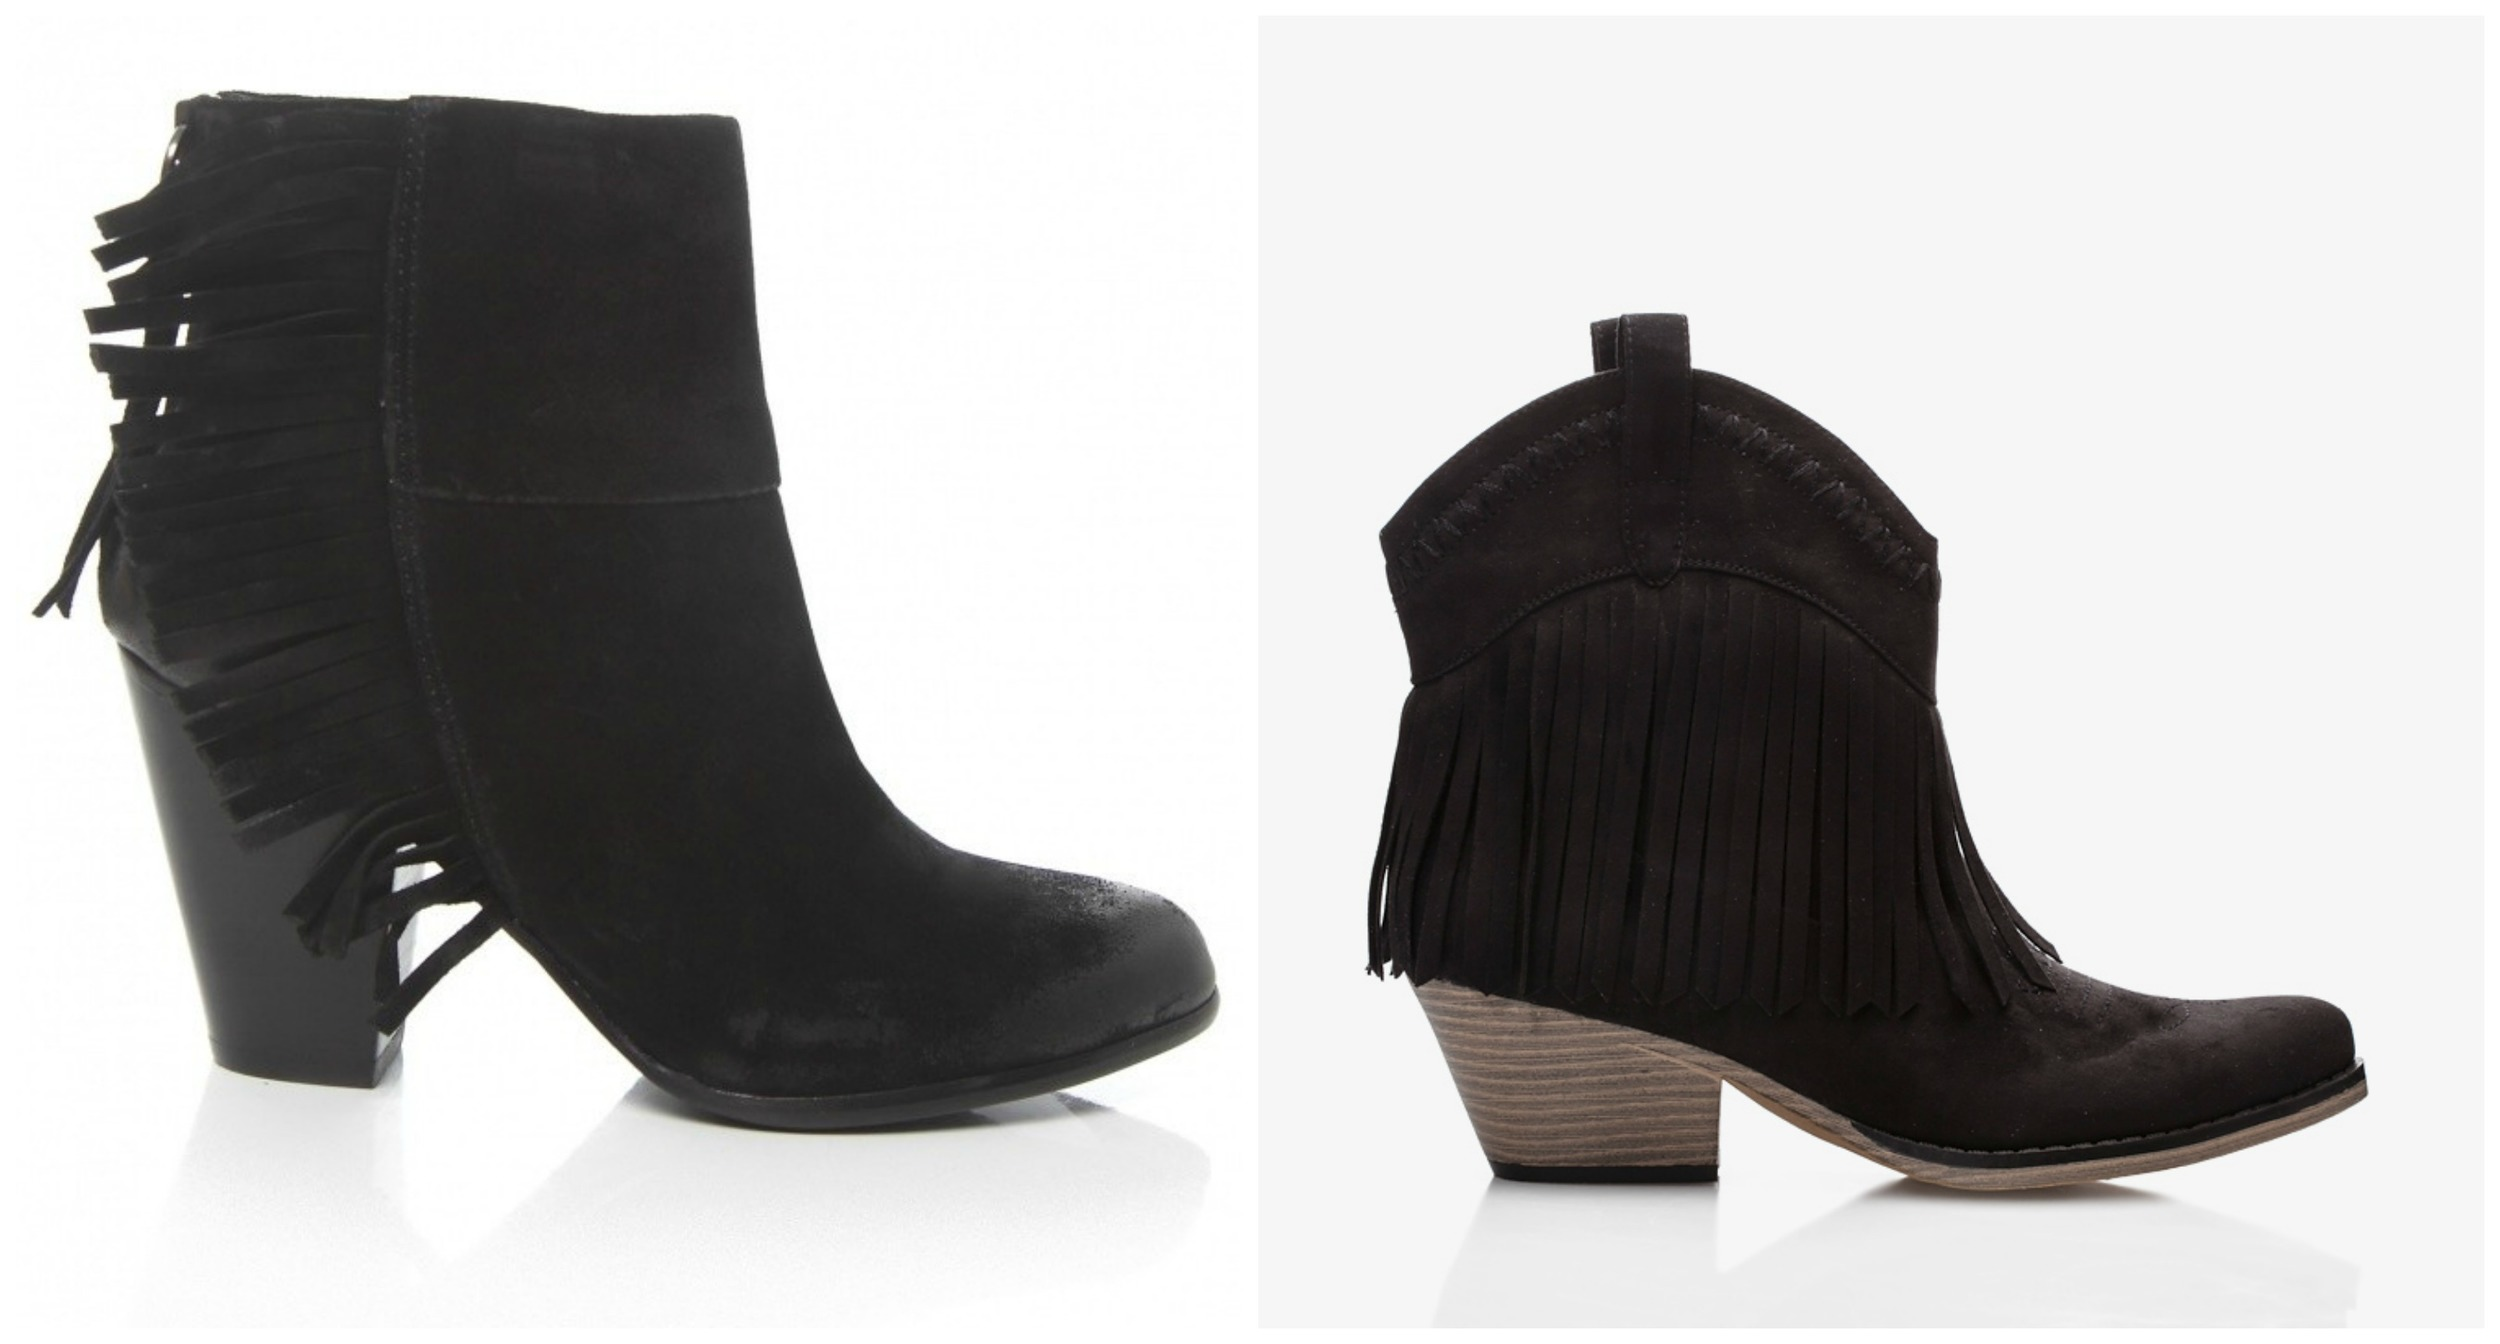 If you guessed the ones on the right. You have an eye for a good bargain. The price difference even shocked me.    (LEFT)  ASH QUICK CALF SUEDE BOOTIES $281.00   (RIGHT)  F21 FRINGE STYLE BOOTIE $36.80